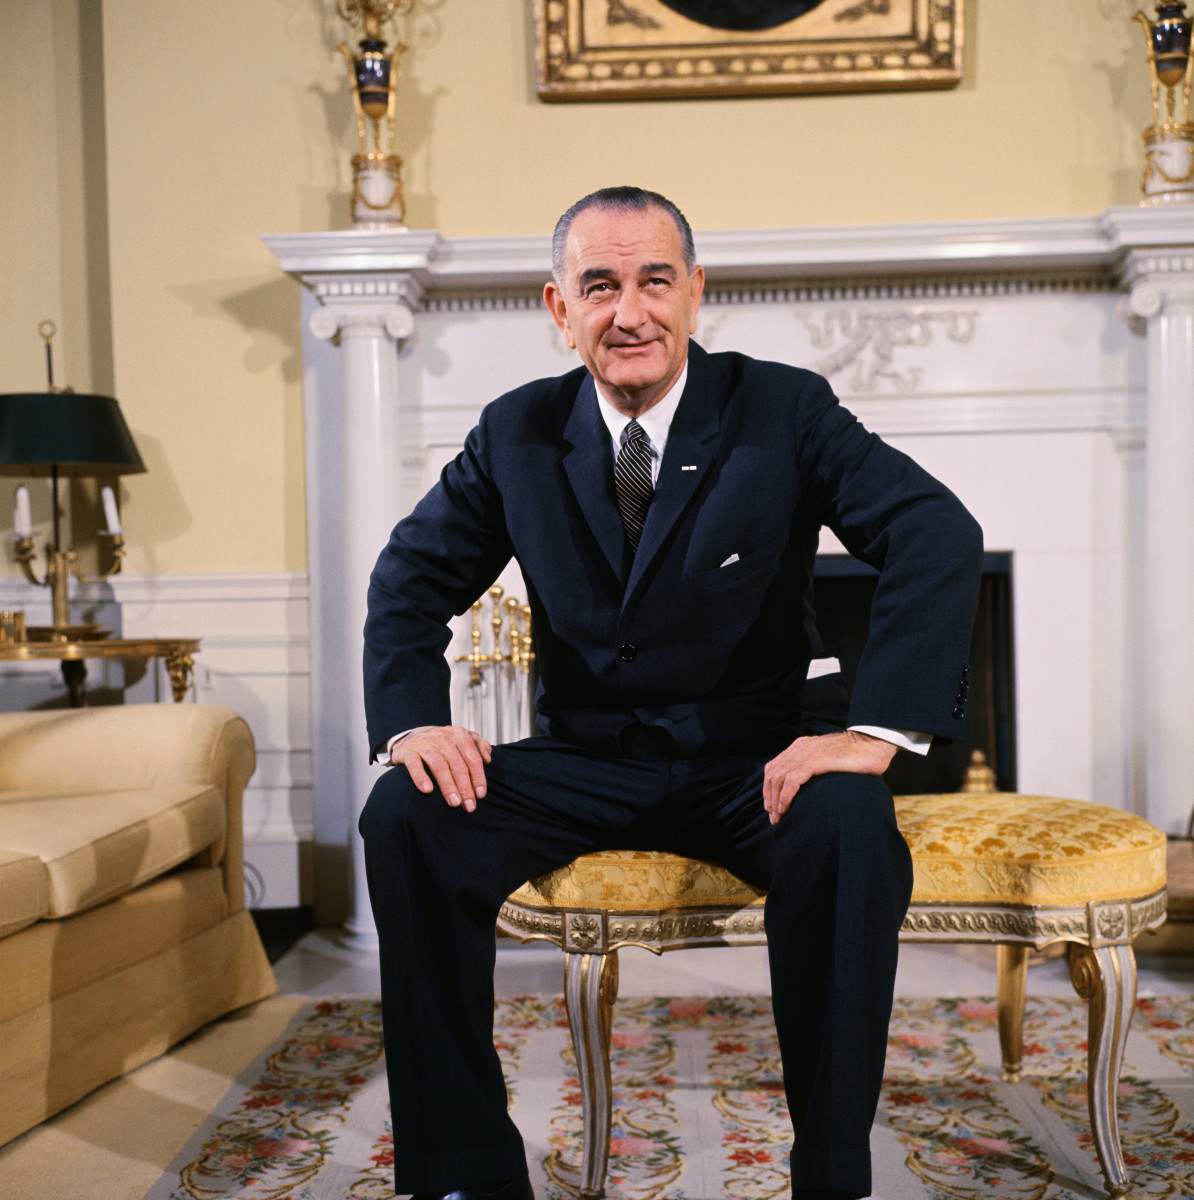 Lyndon B. Johnson in the Oval Sitting Room of the family quarters of the White House in Washington, DC.